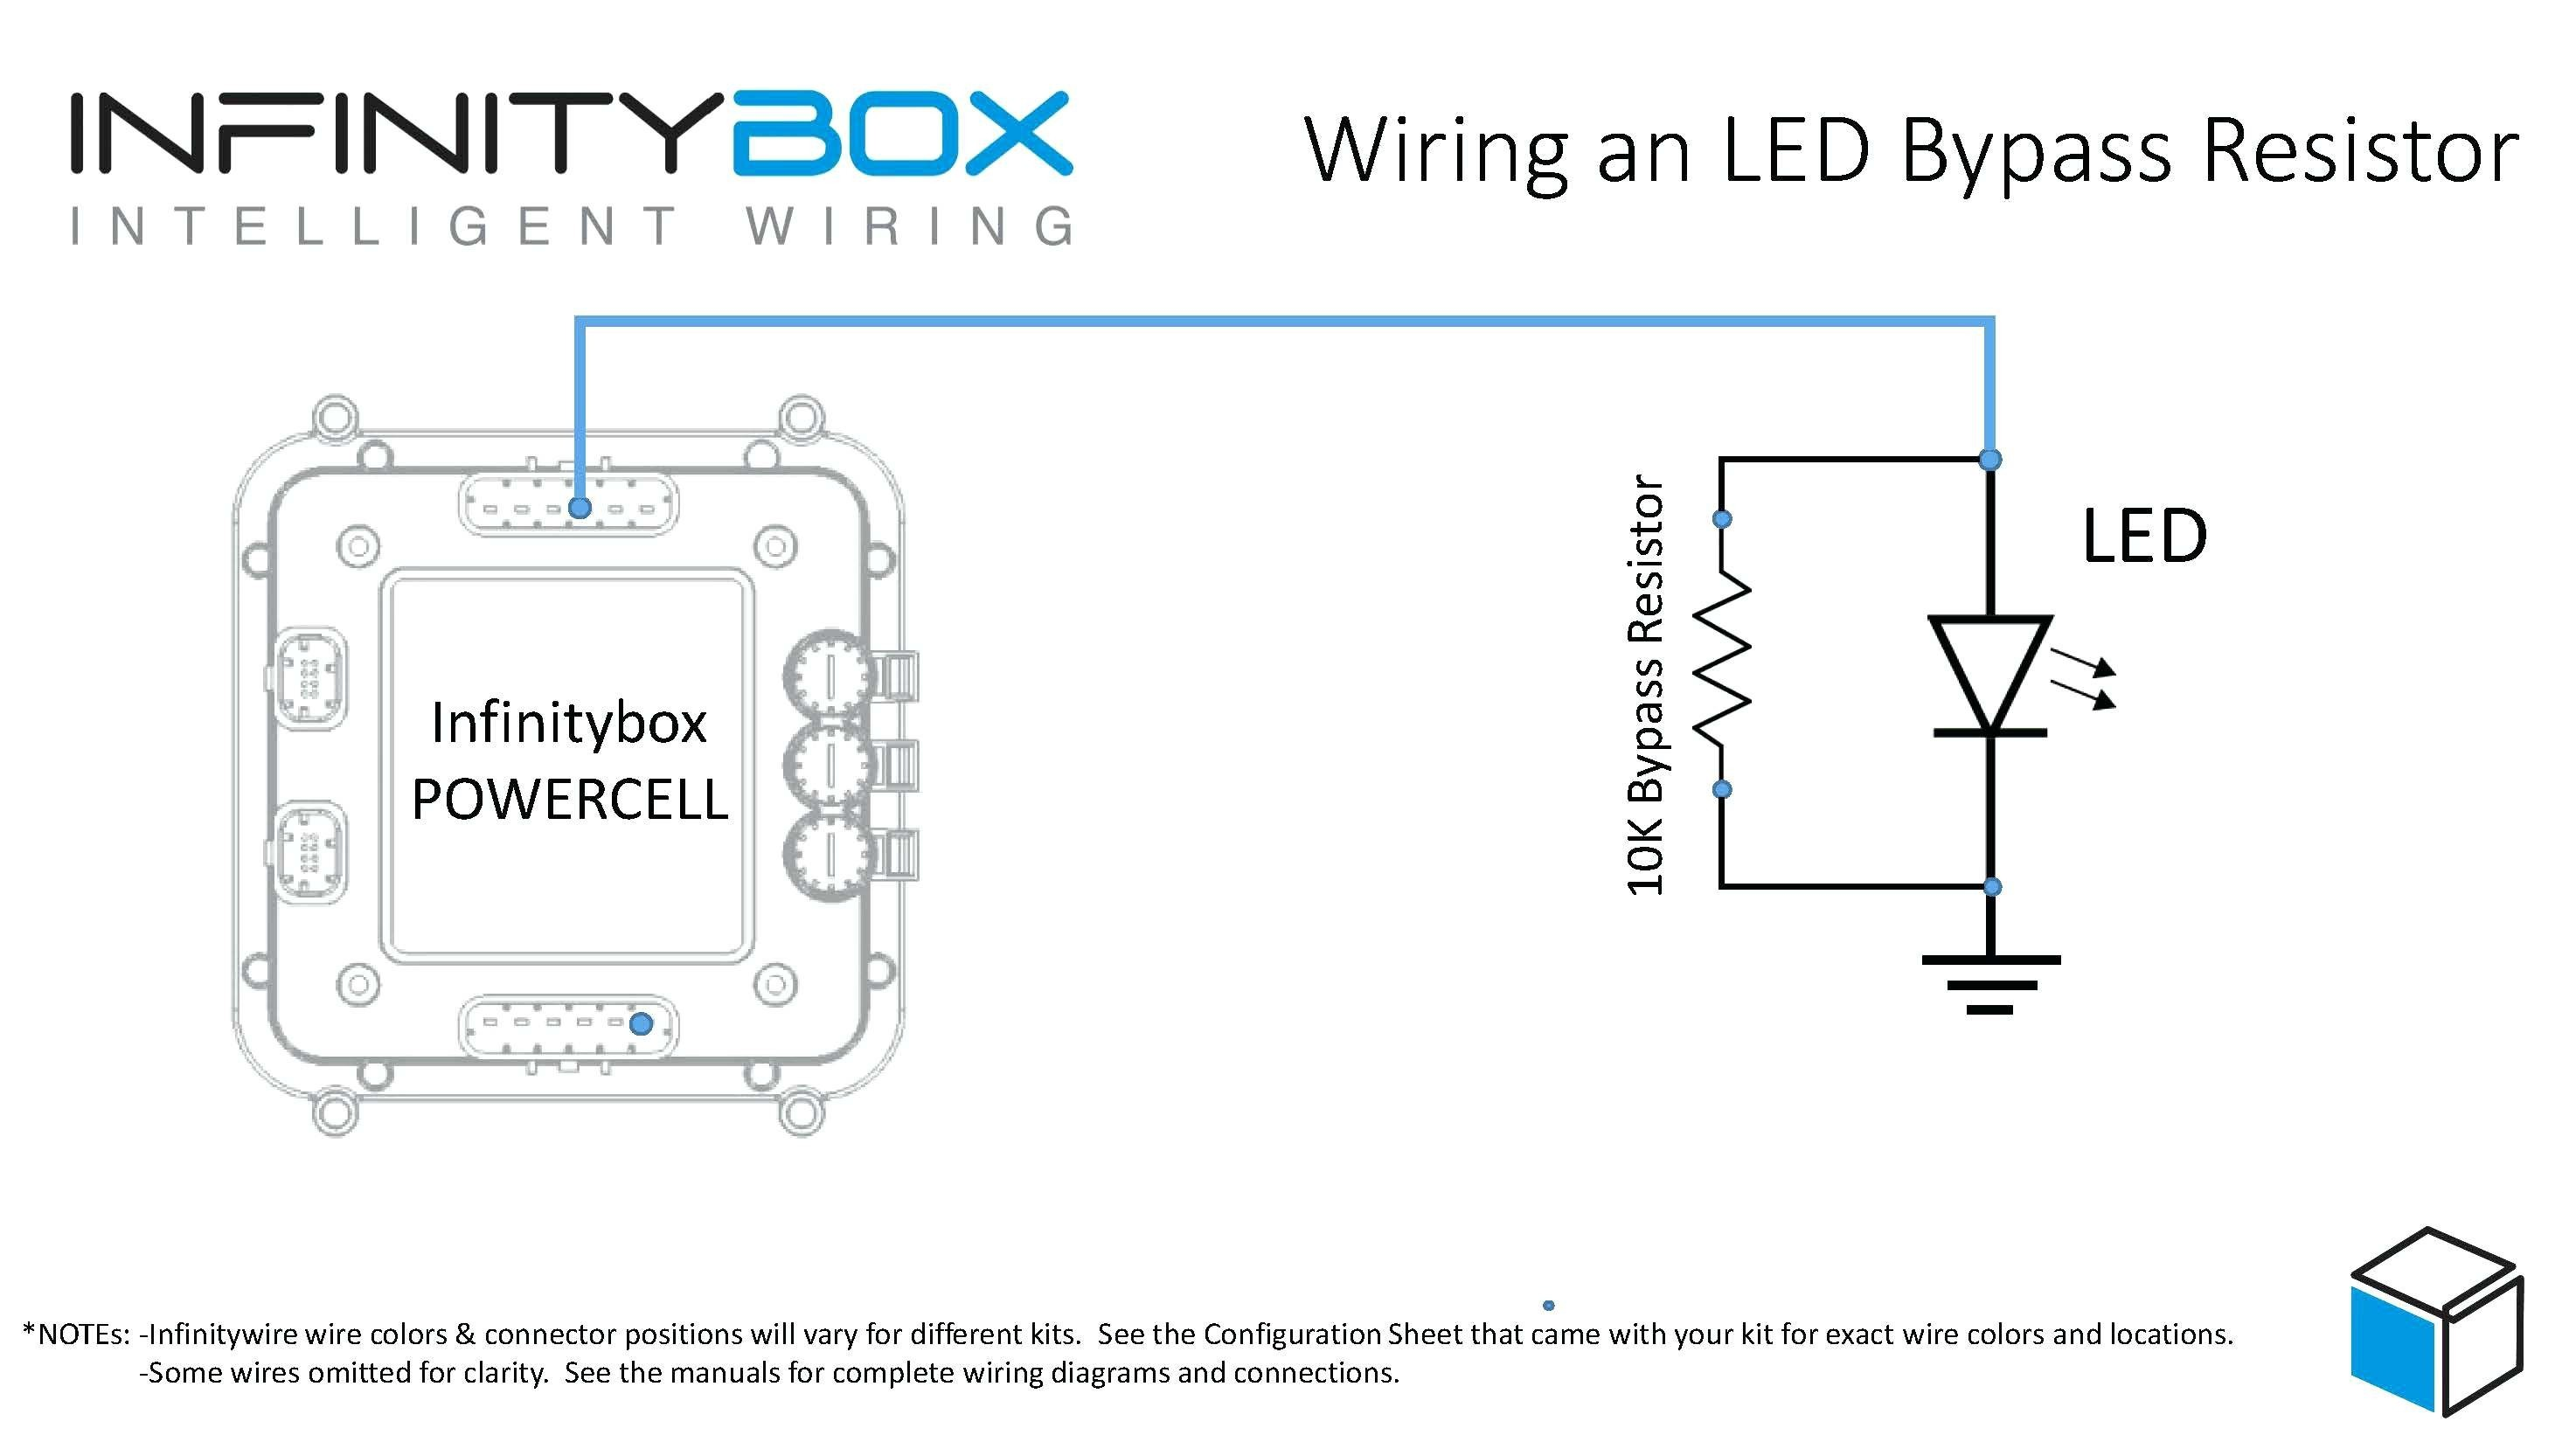 Wiring Diagram Led Tube Philips New Wiring Diagram Led Tube Philips Inspiration Led Tube Light Wiring